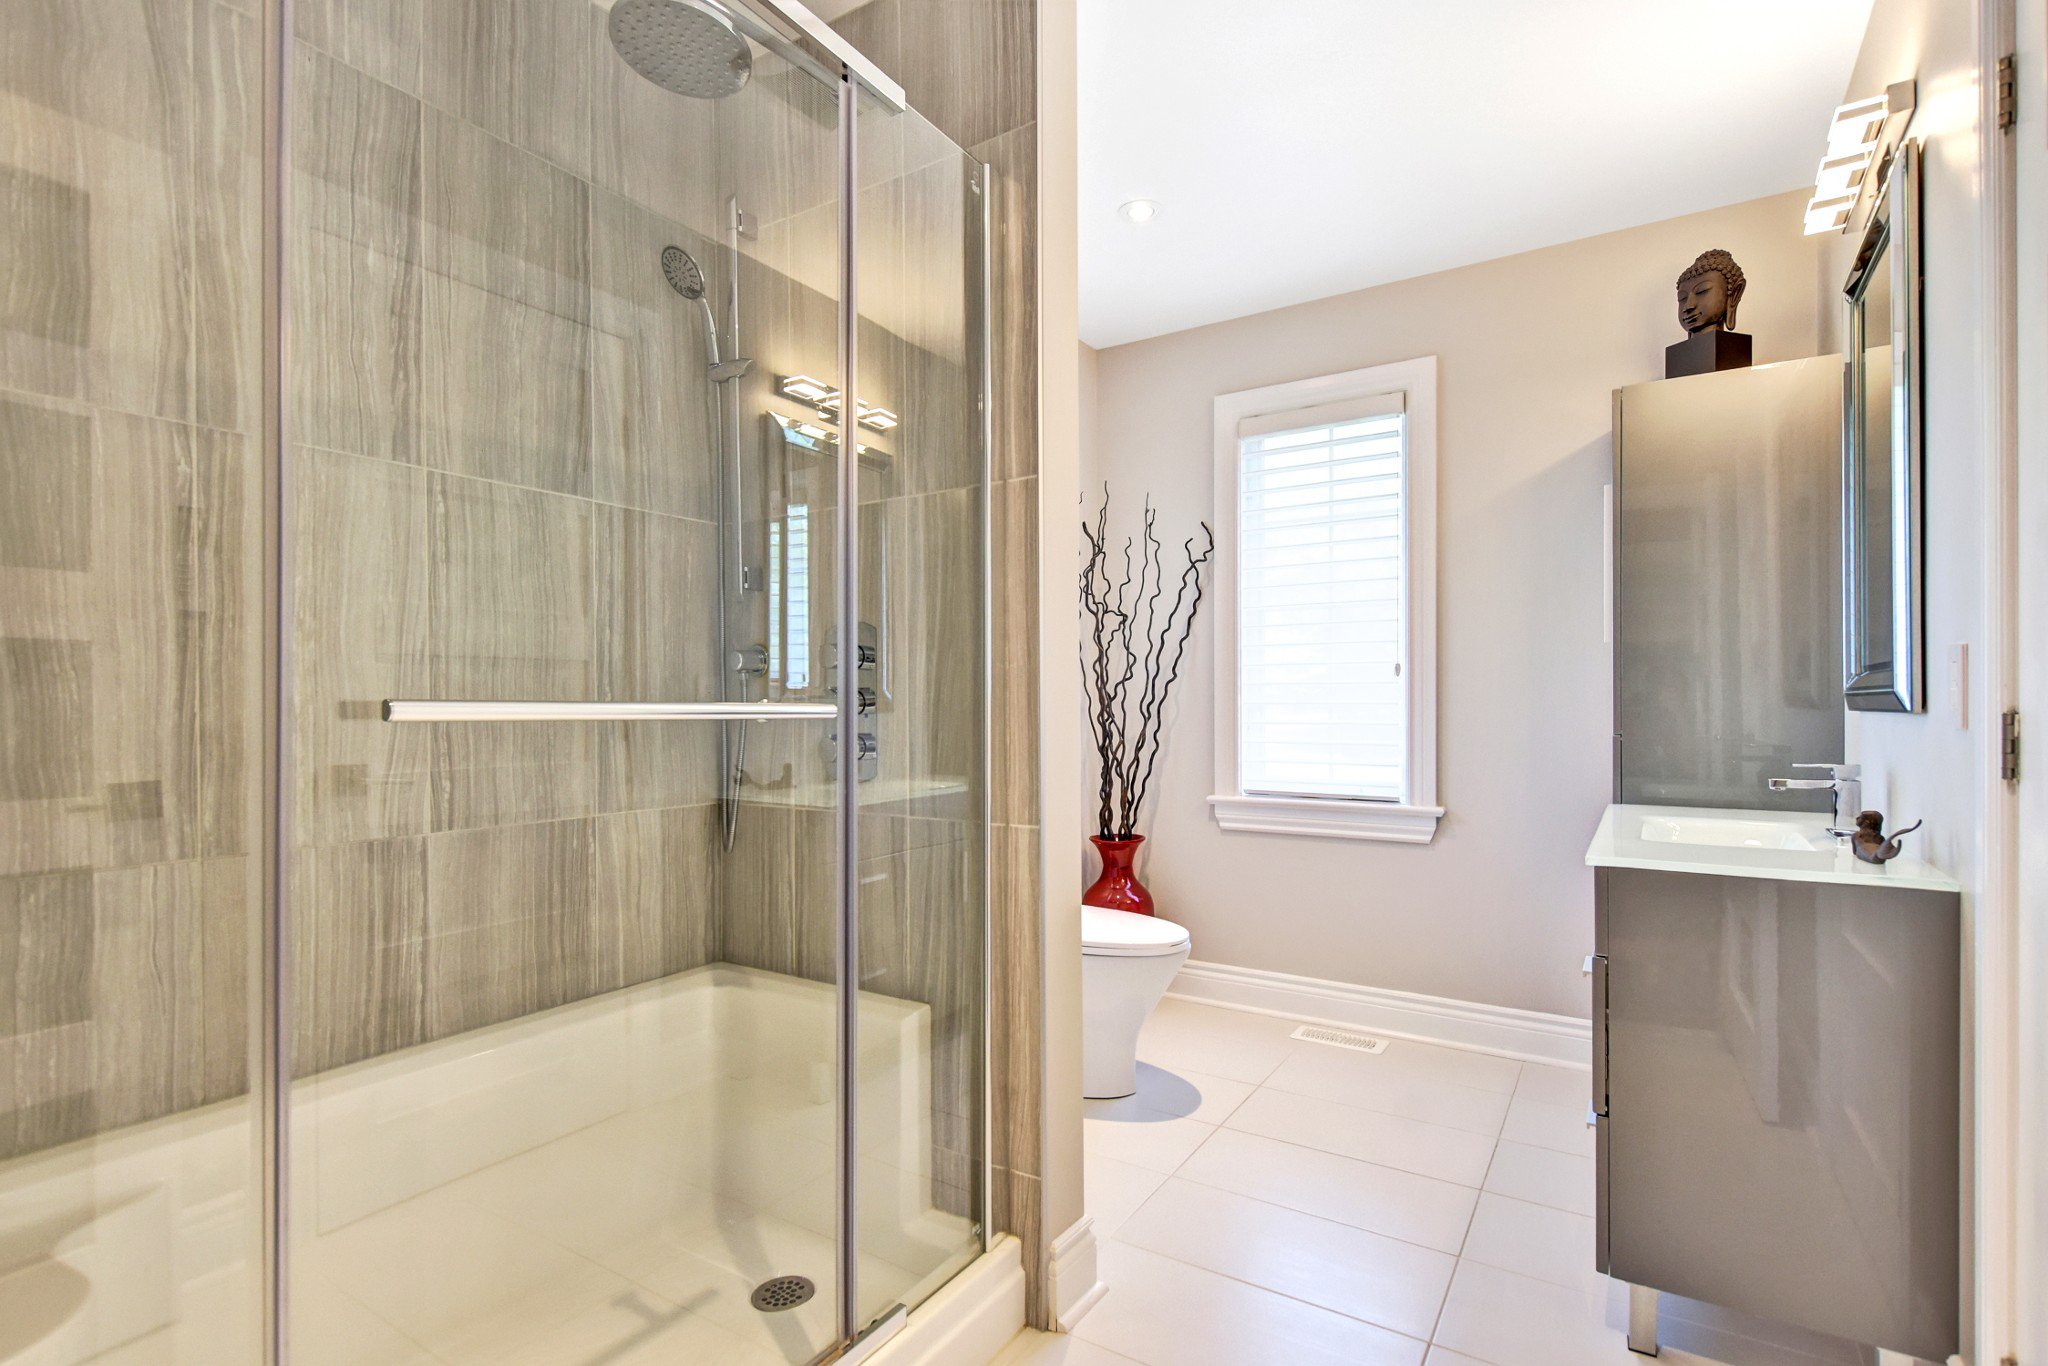 Photo 44: Photos: 1490 REINDEER WAY.: Greely House for sale (Ottawa)  : MLS®# 1109530